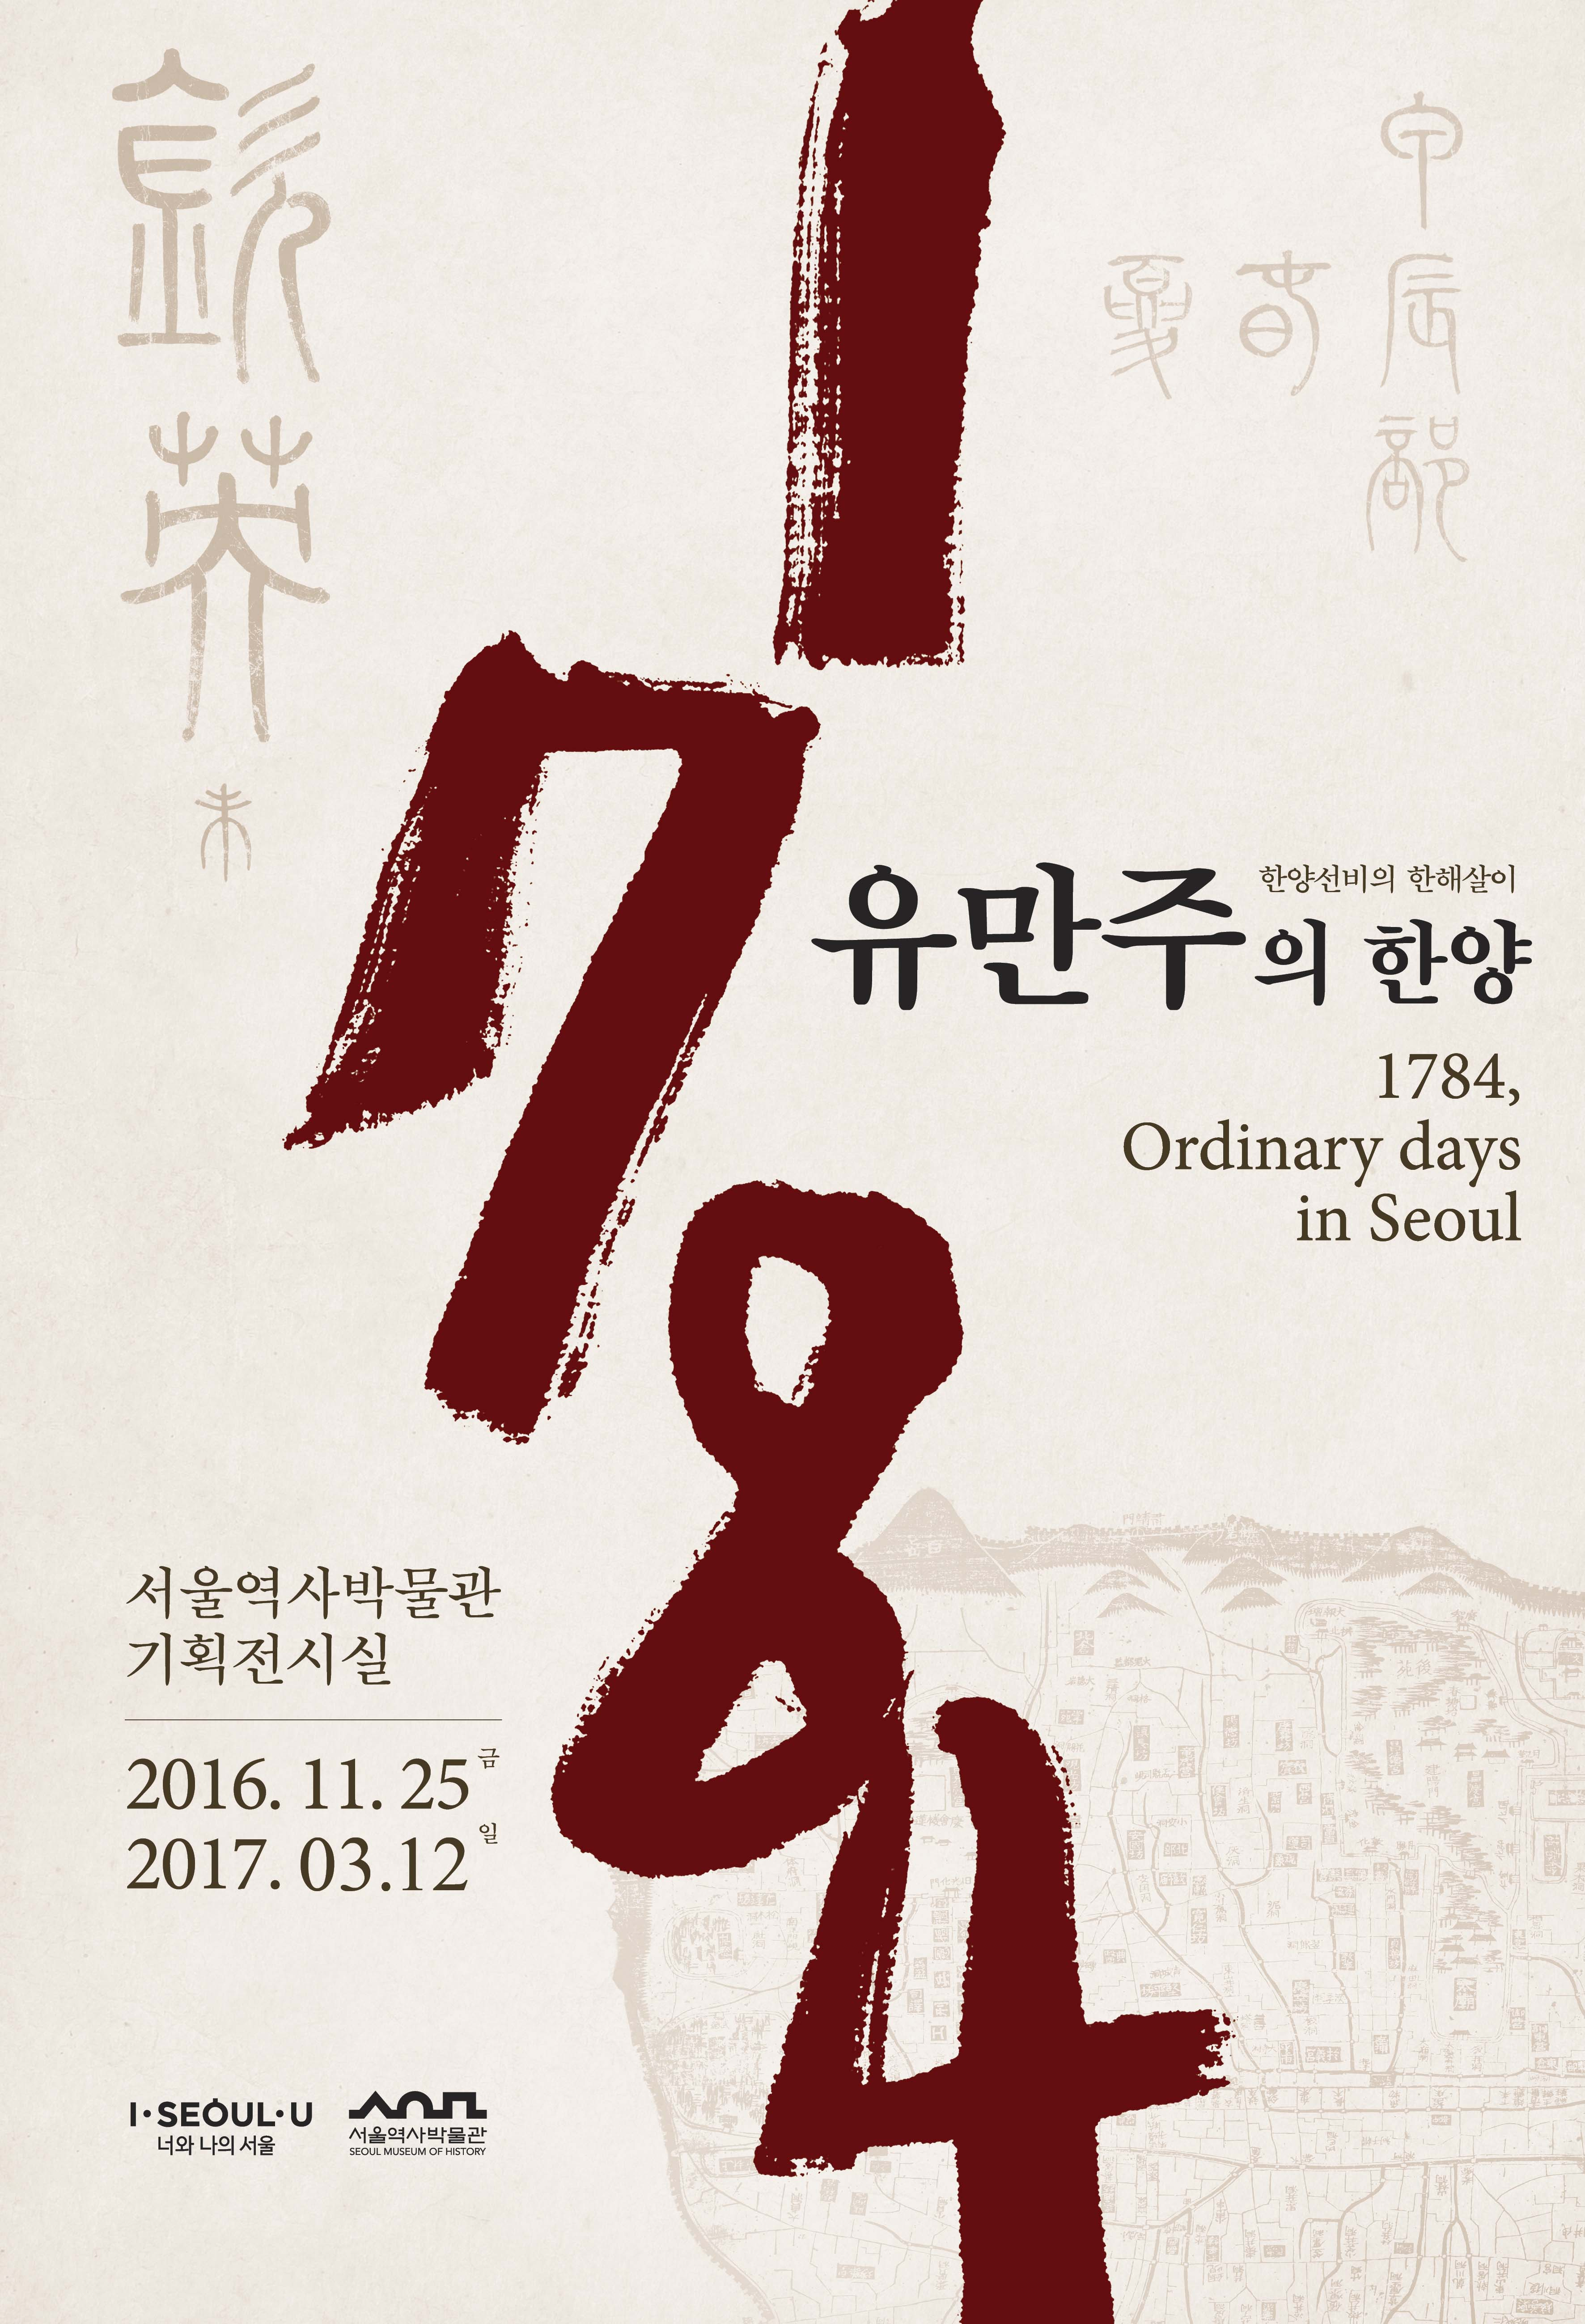 1784, Ordinary days in Seoul